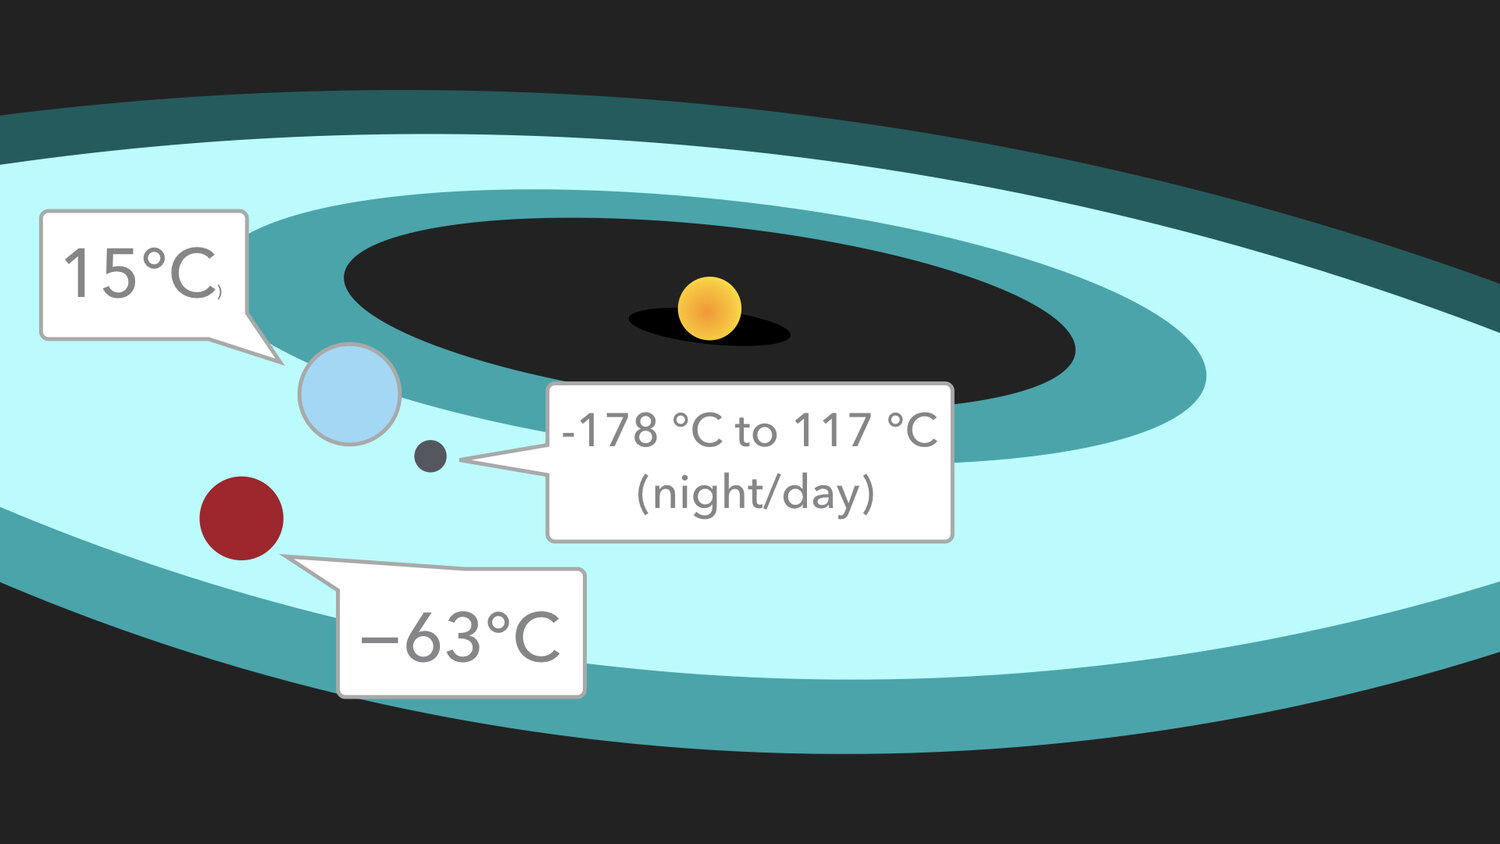 Average temperatures of your favourite habitable zone worlds. The moon doesn't really do average temperature, as it lacks at atmosphere to do the averaging. So lunatics get a scorching day and frozen night. They die. Just like you would.